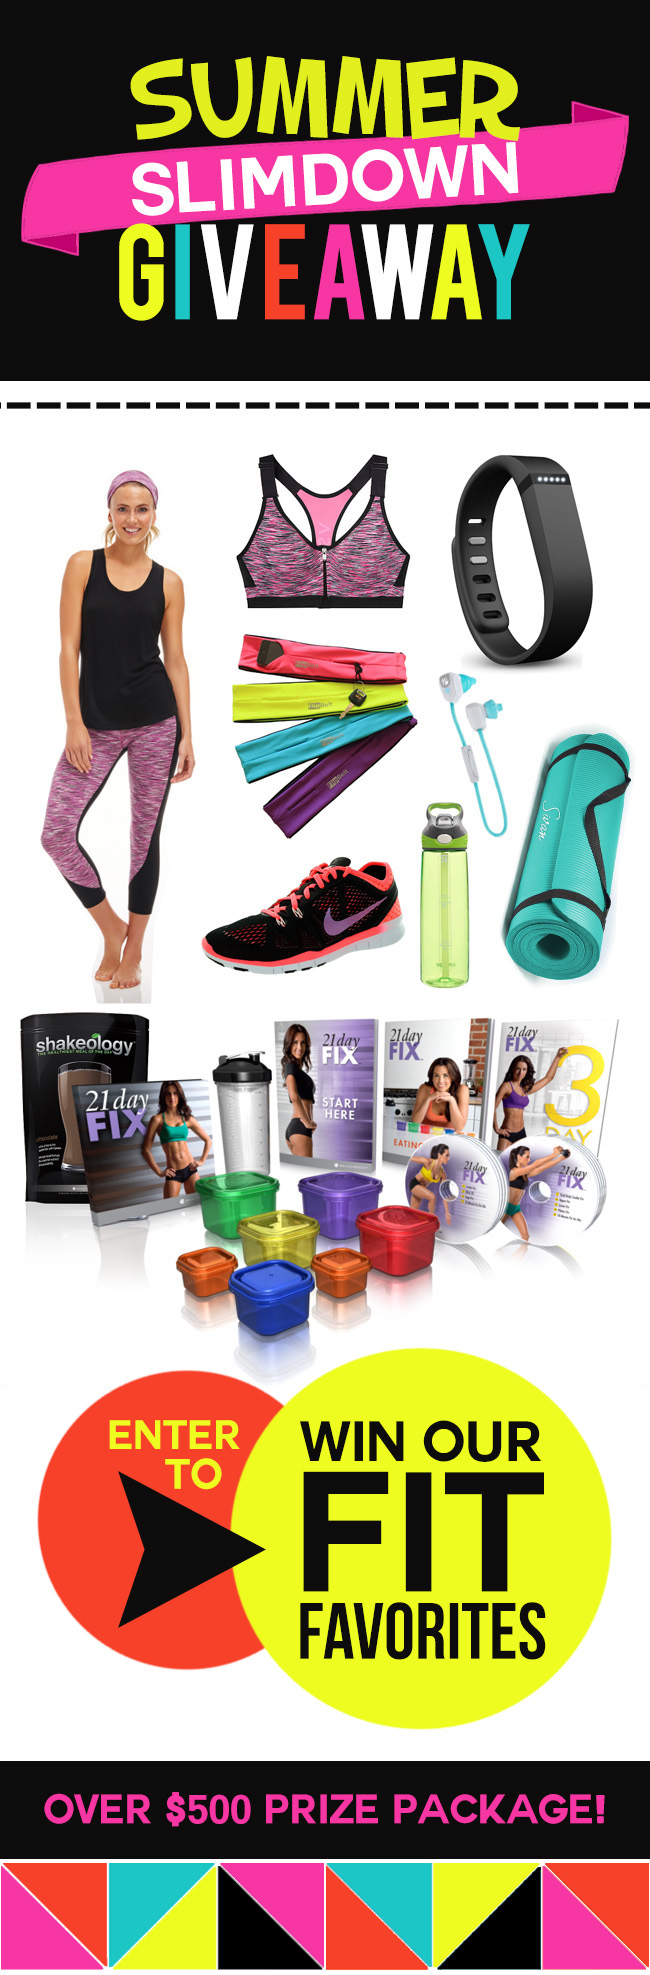 Amazing summer slimdown giveaway -- $500 prize pack!